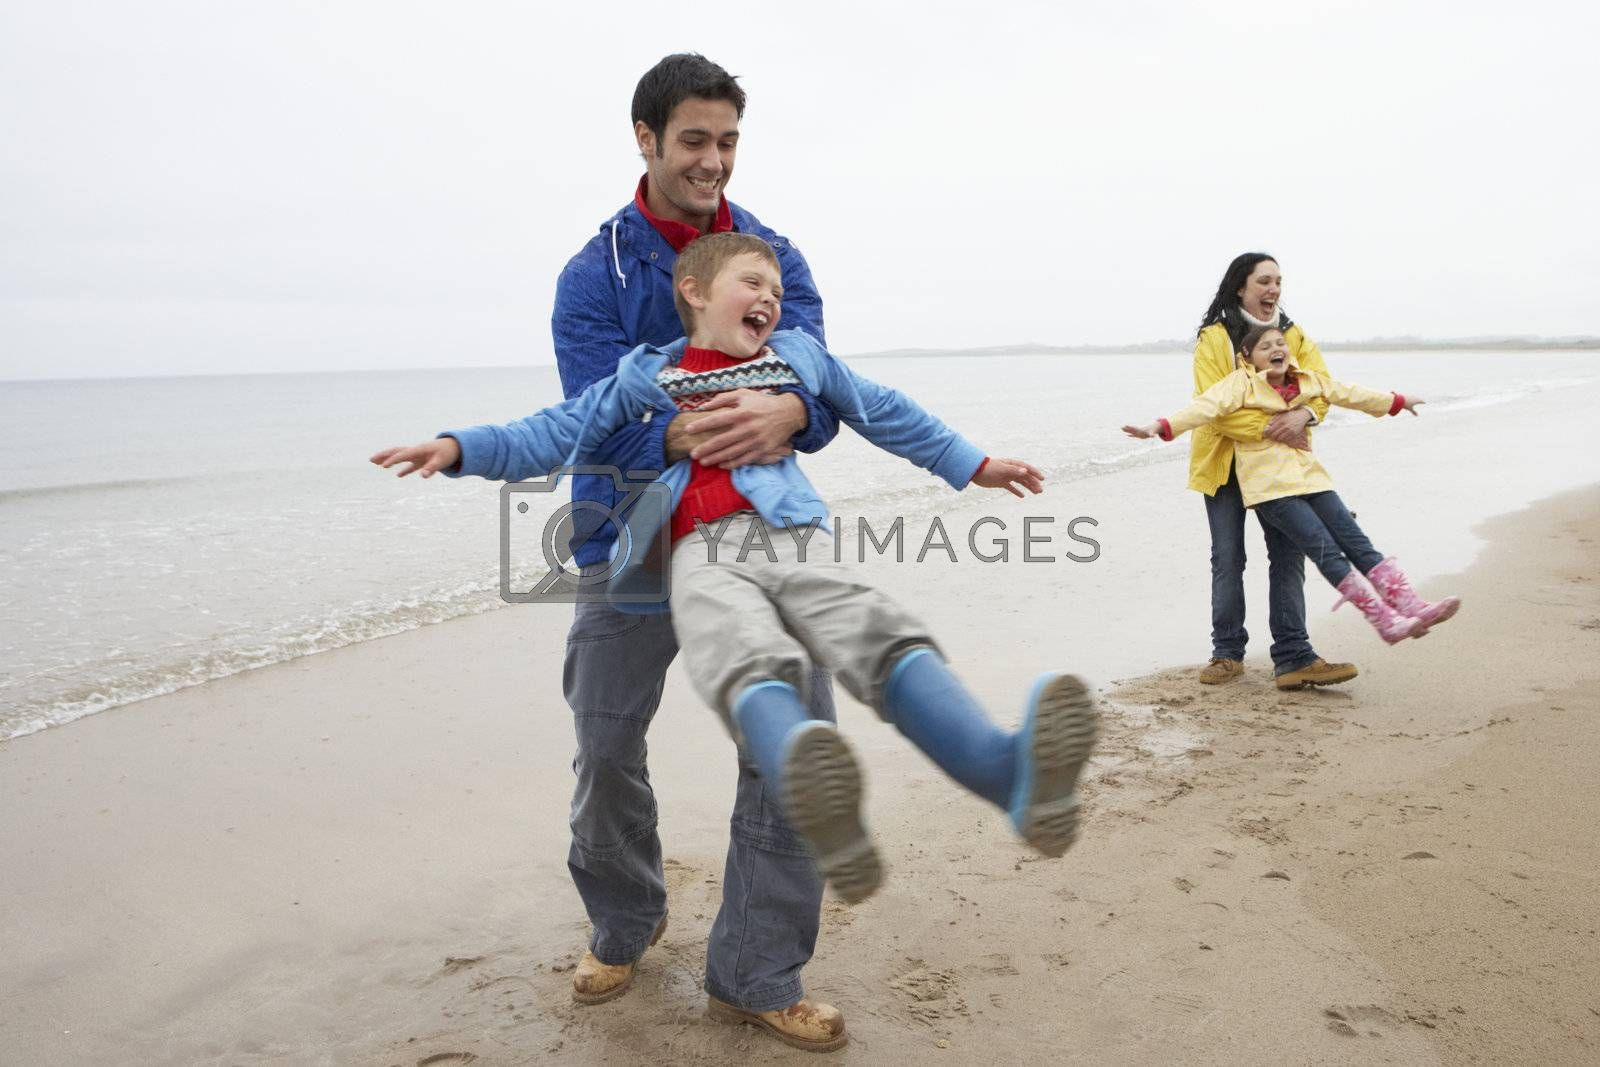 Royalty free image of Family playing on beach by omg_images